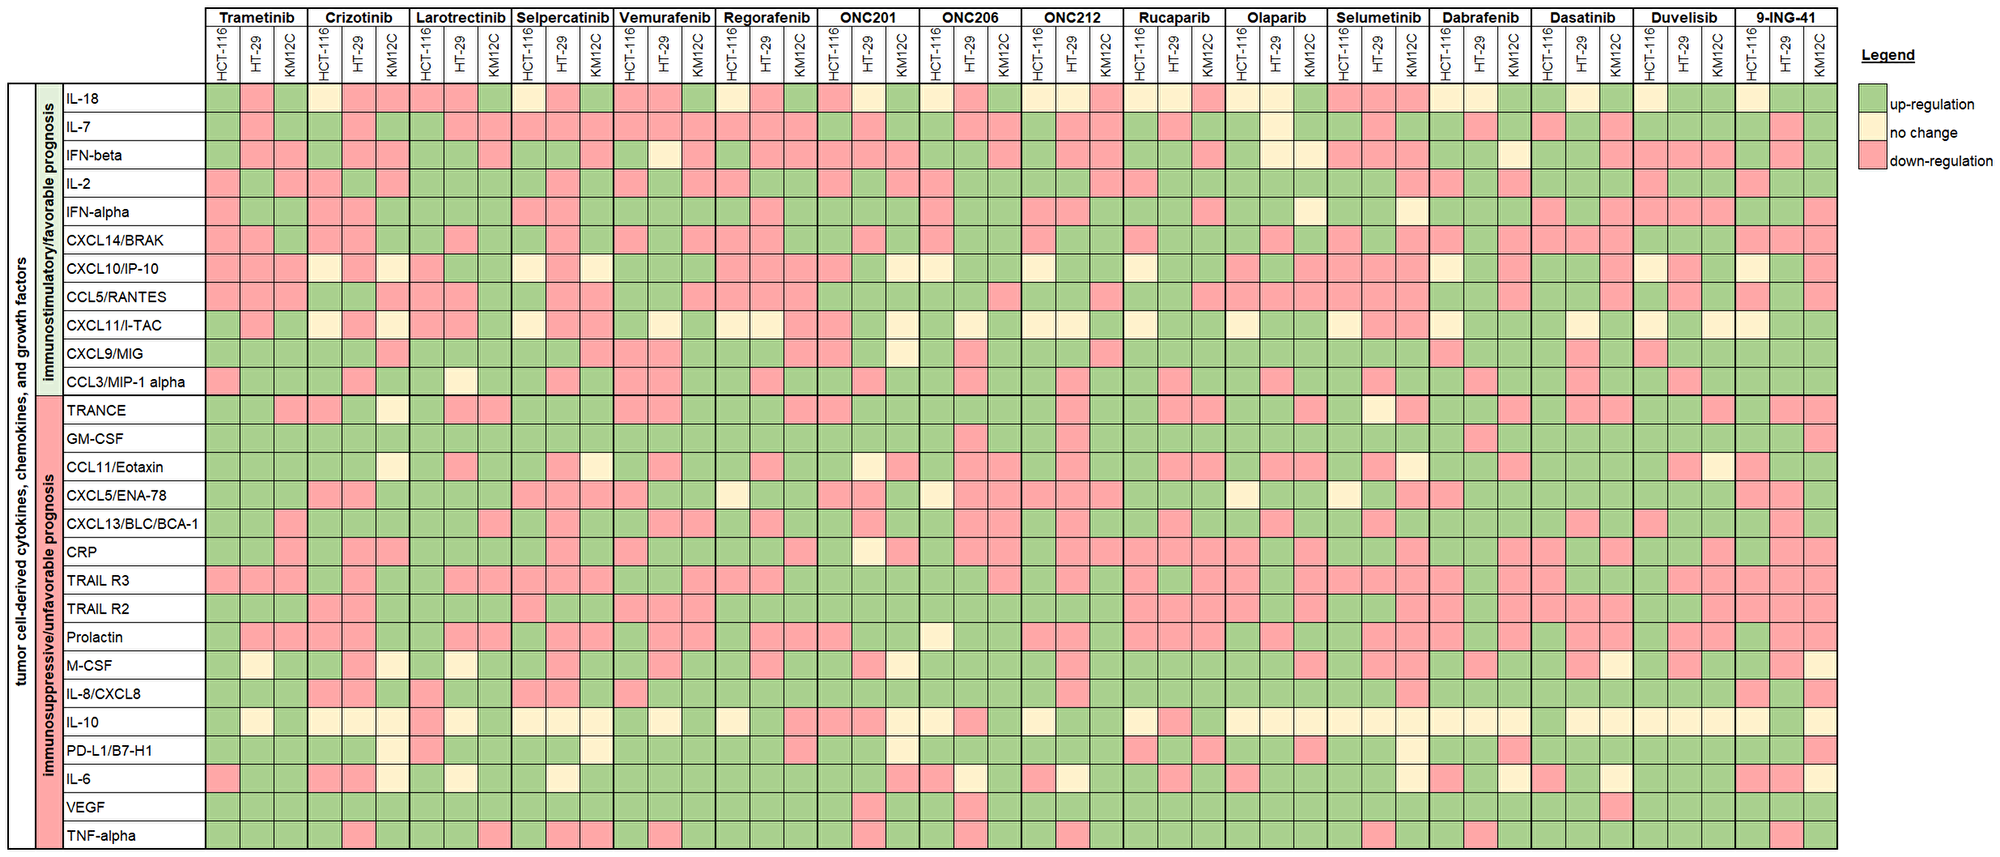 Immune synergy heat map showing cell line changes in cytokine, chemokine, and growth factor profiles in response to therapeutic treatment.